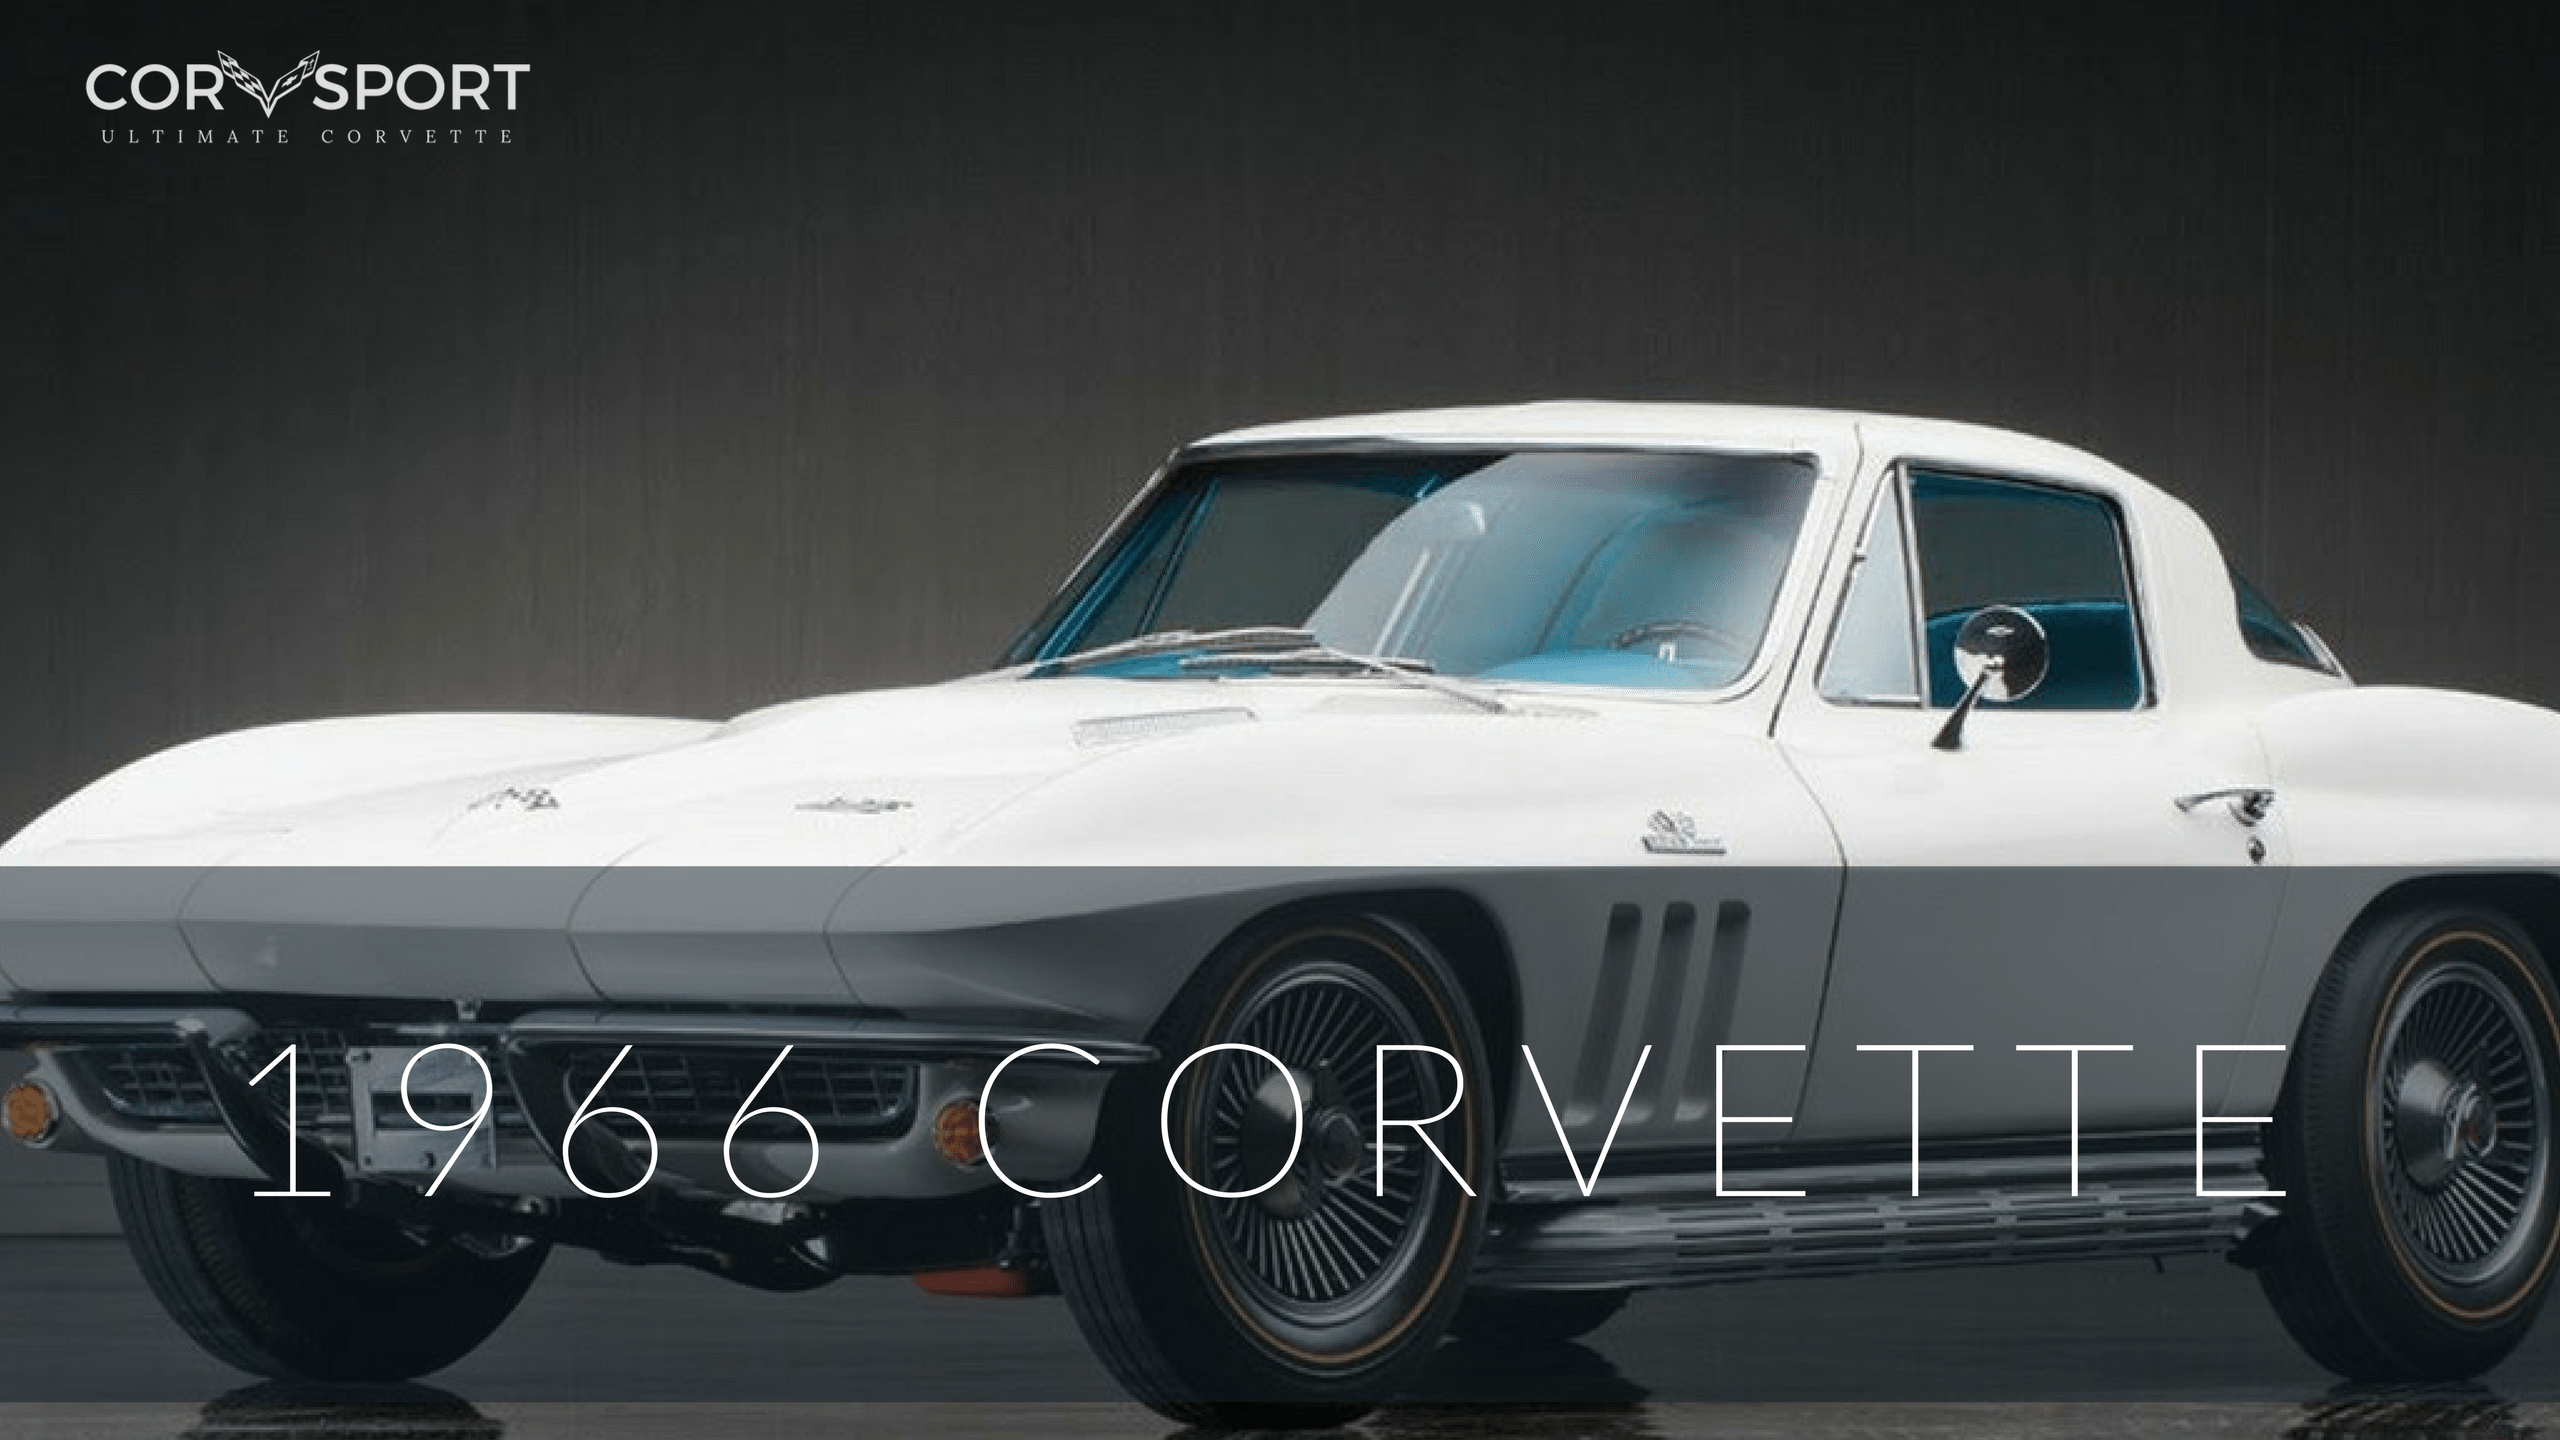 1966 C2 Corvette | Ultimate Guide (Overview, Specs, VIN Info ... C Corvette Fuel Tank Wiring Diagram on fuel tank regulator, fuel tank wires on gq, fuel tank relay, fuel tank solenoid, fuel tank electrical, locks wiring diagram, transmission wiring diagram, power brake wiring diagram, oil tank vent whistle diagram, fuel tank ford, injector wiring diagram, fan clutch wiring diagram, valve wiring diagram, fuel tank lights, a/c compressor wiring diagram, slave cylinder wiring diagram, engine wiring diagram, heater motor wiring diagram, fuel tank distributor, water pump wiring diagram,